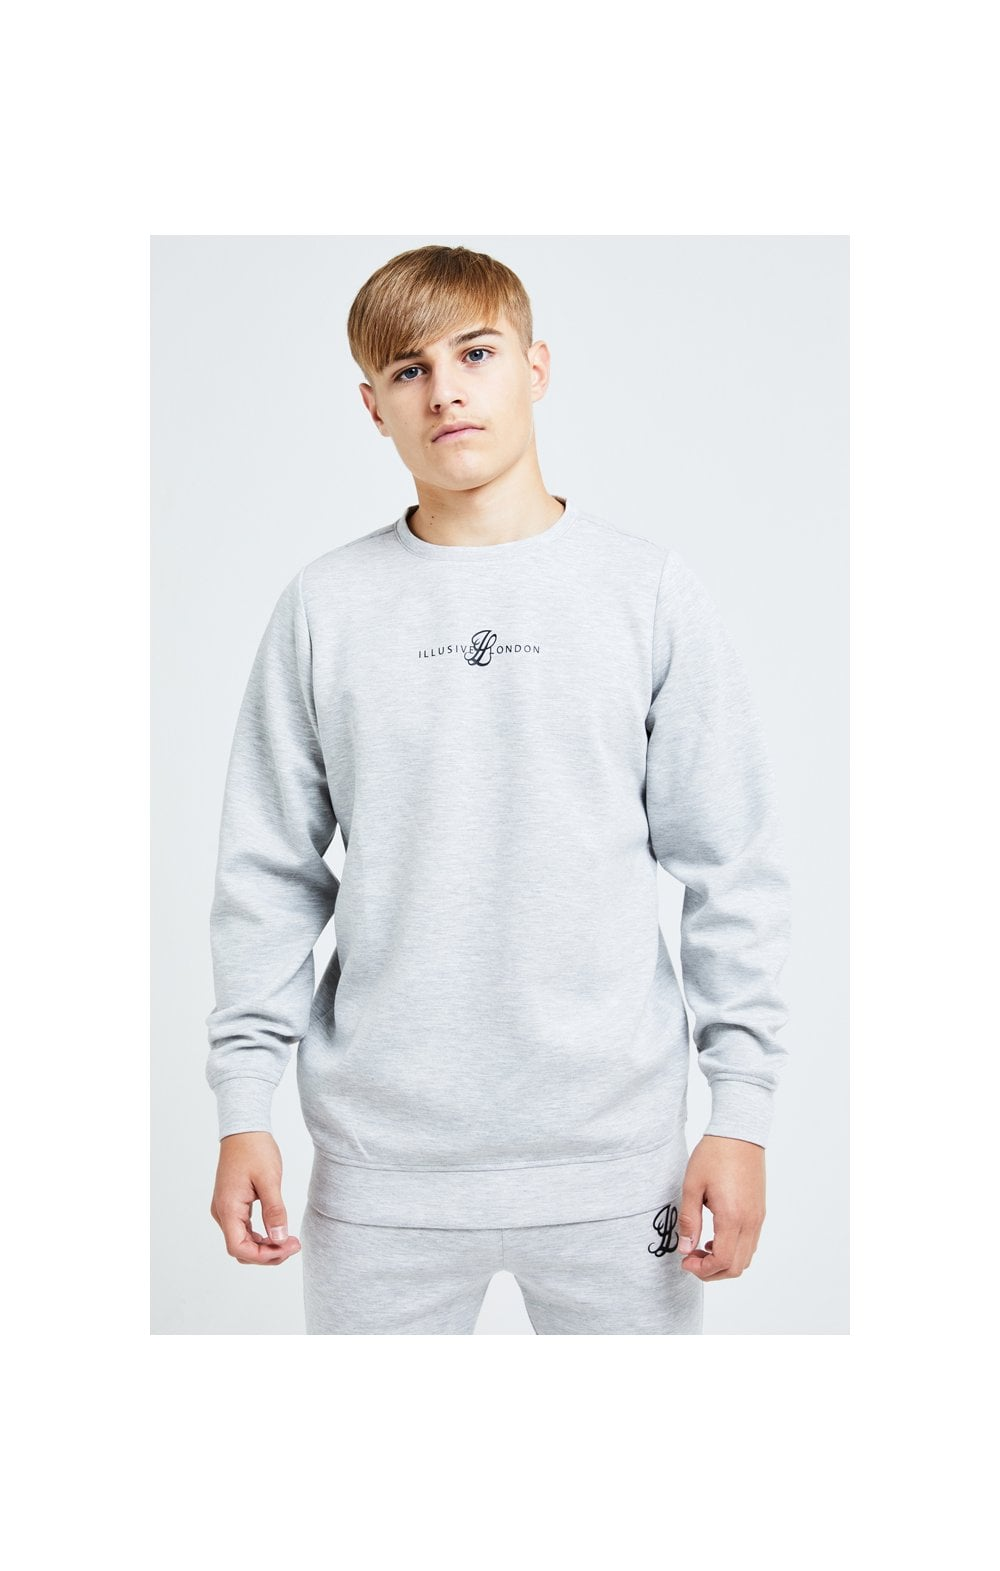 Illusive London Dual Crew Sweater - Grey